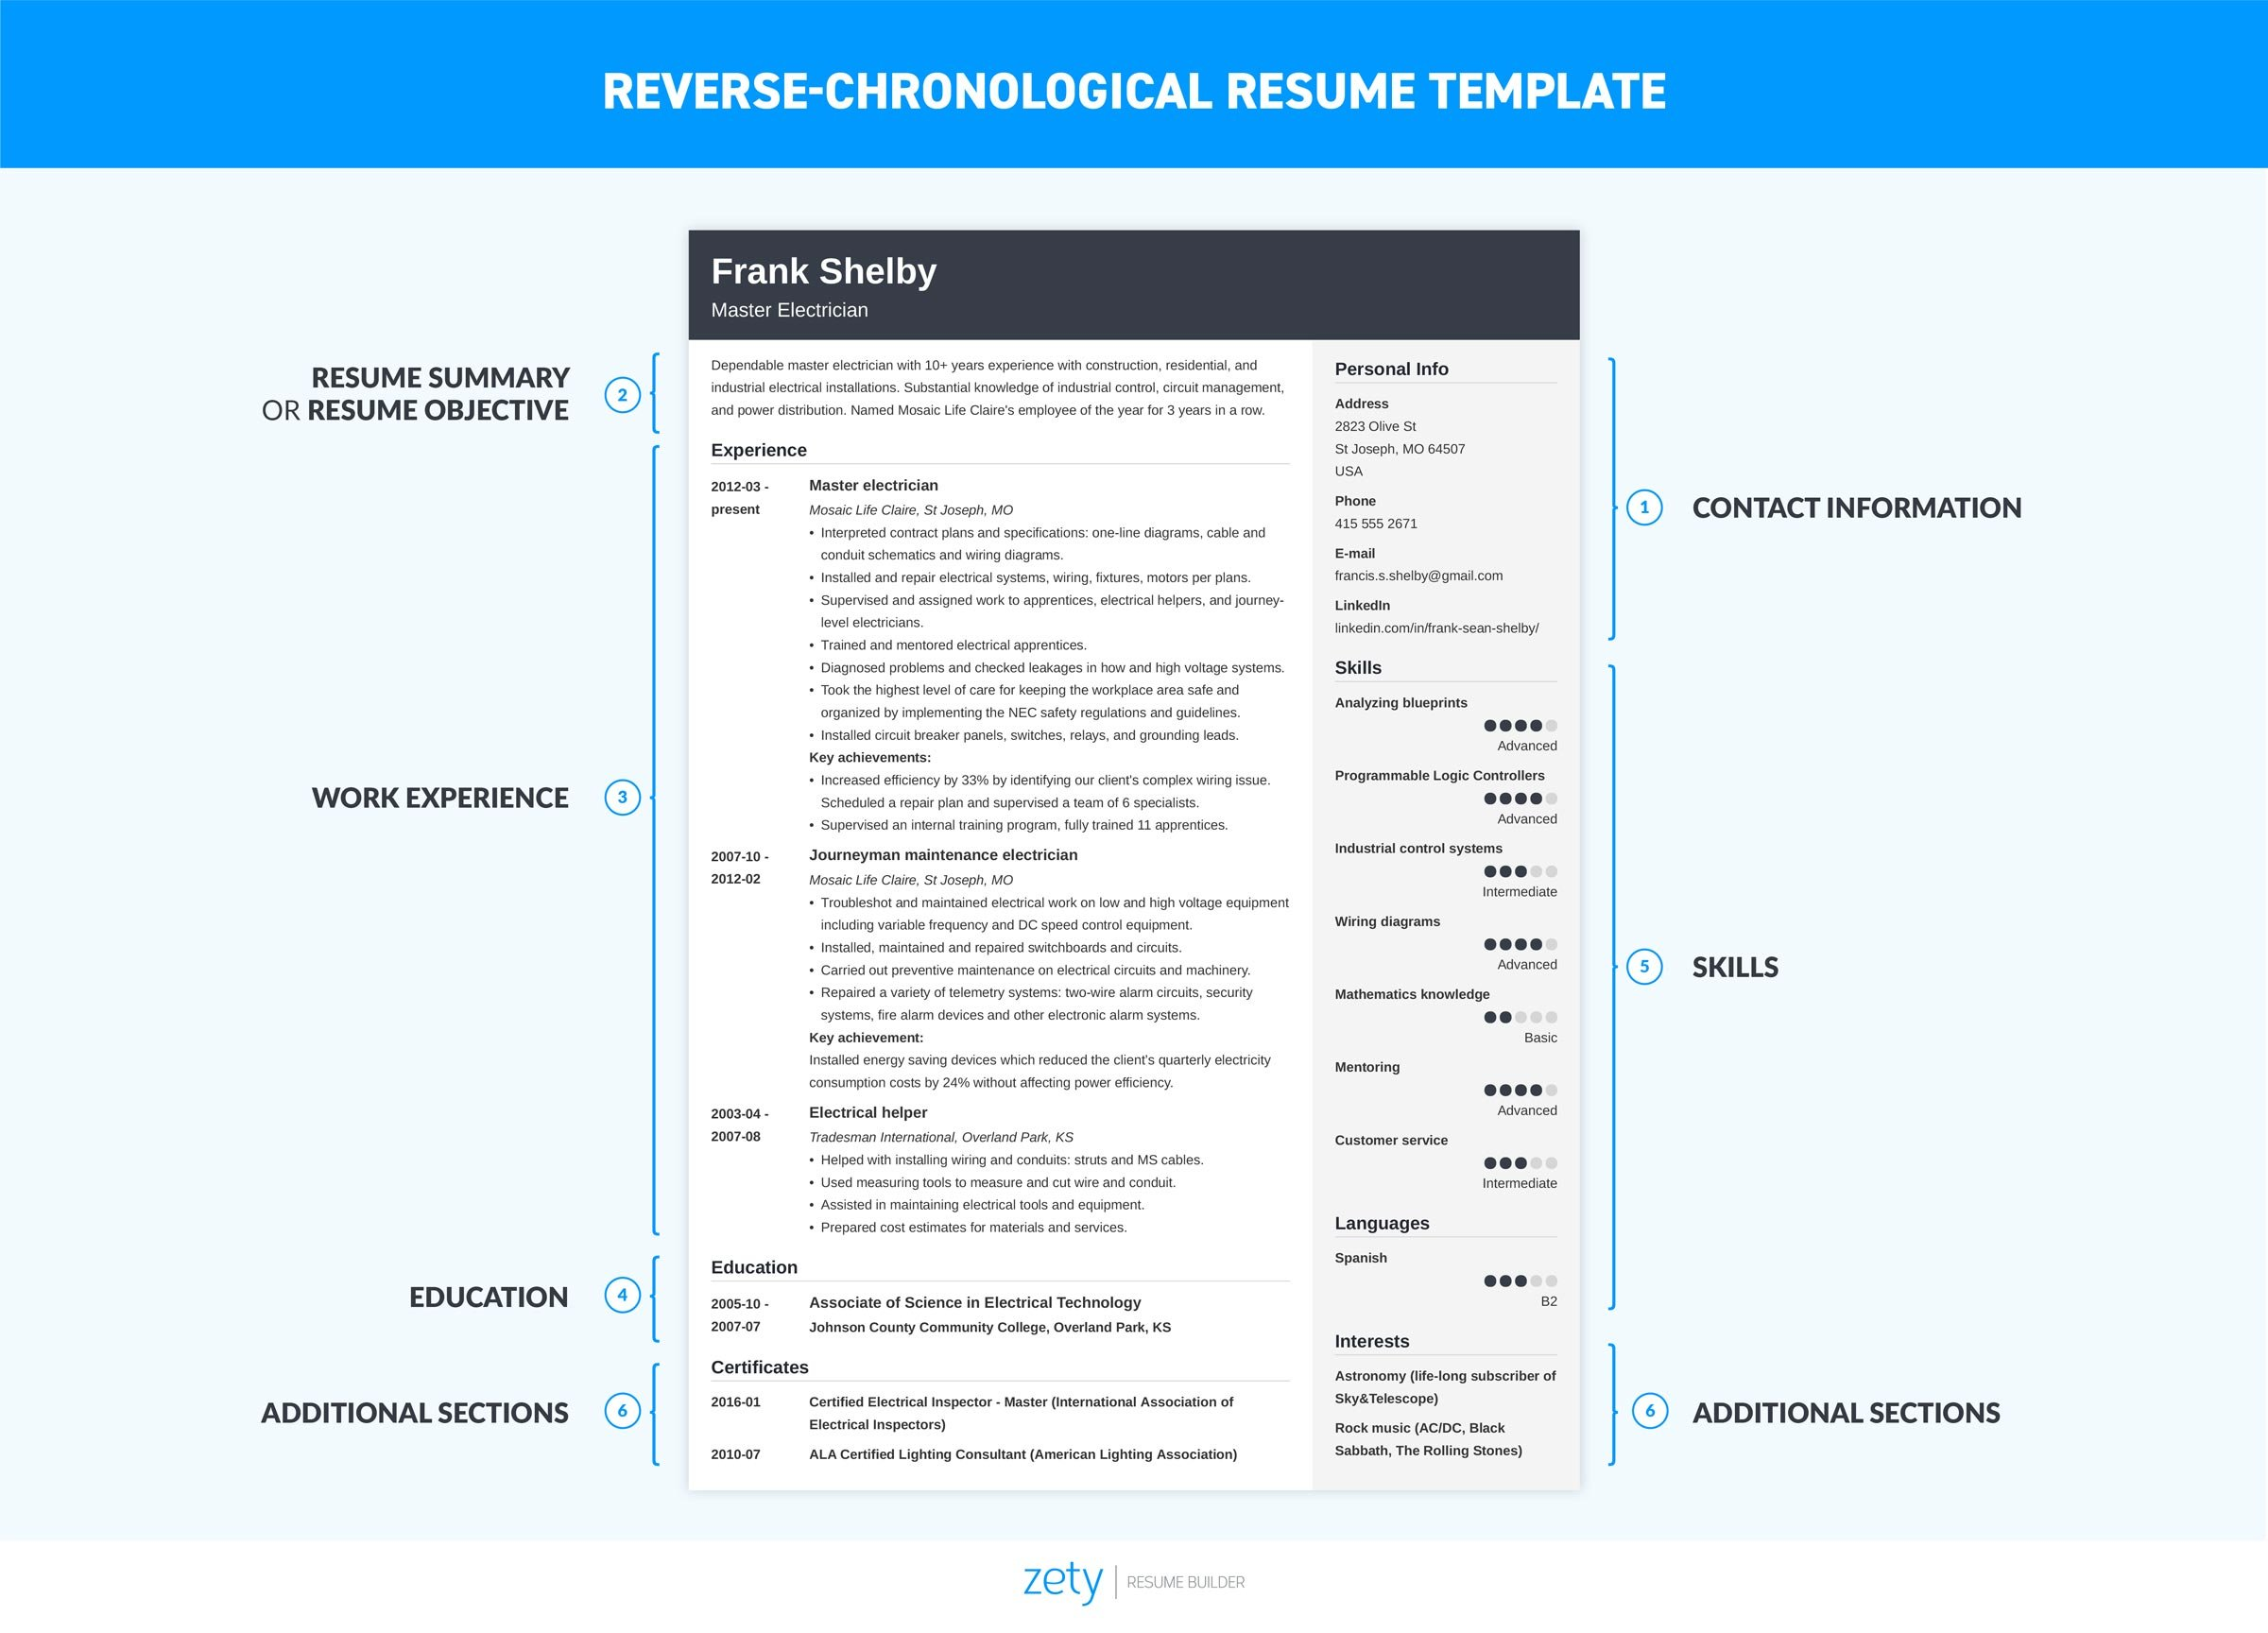 chronological resume template format examples current samples to write on the job Resume Current Resume Samples 2019